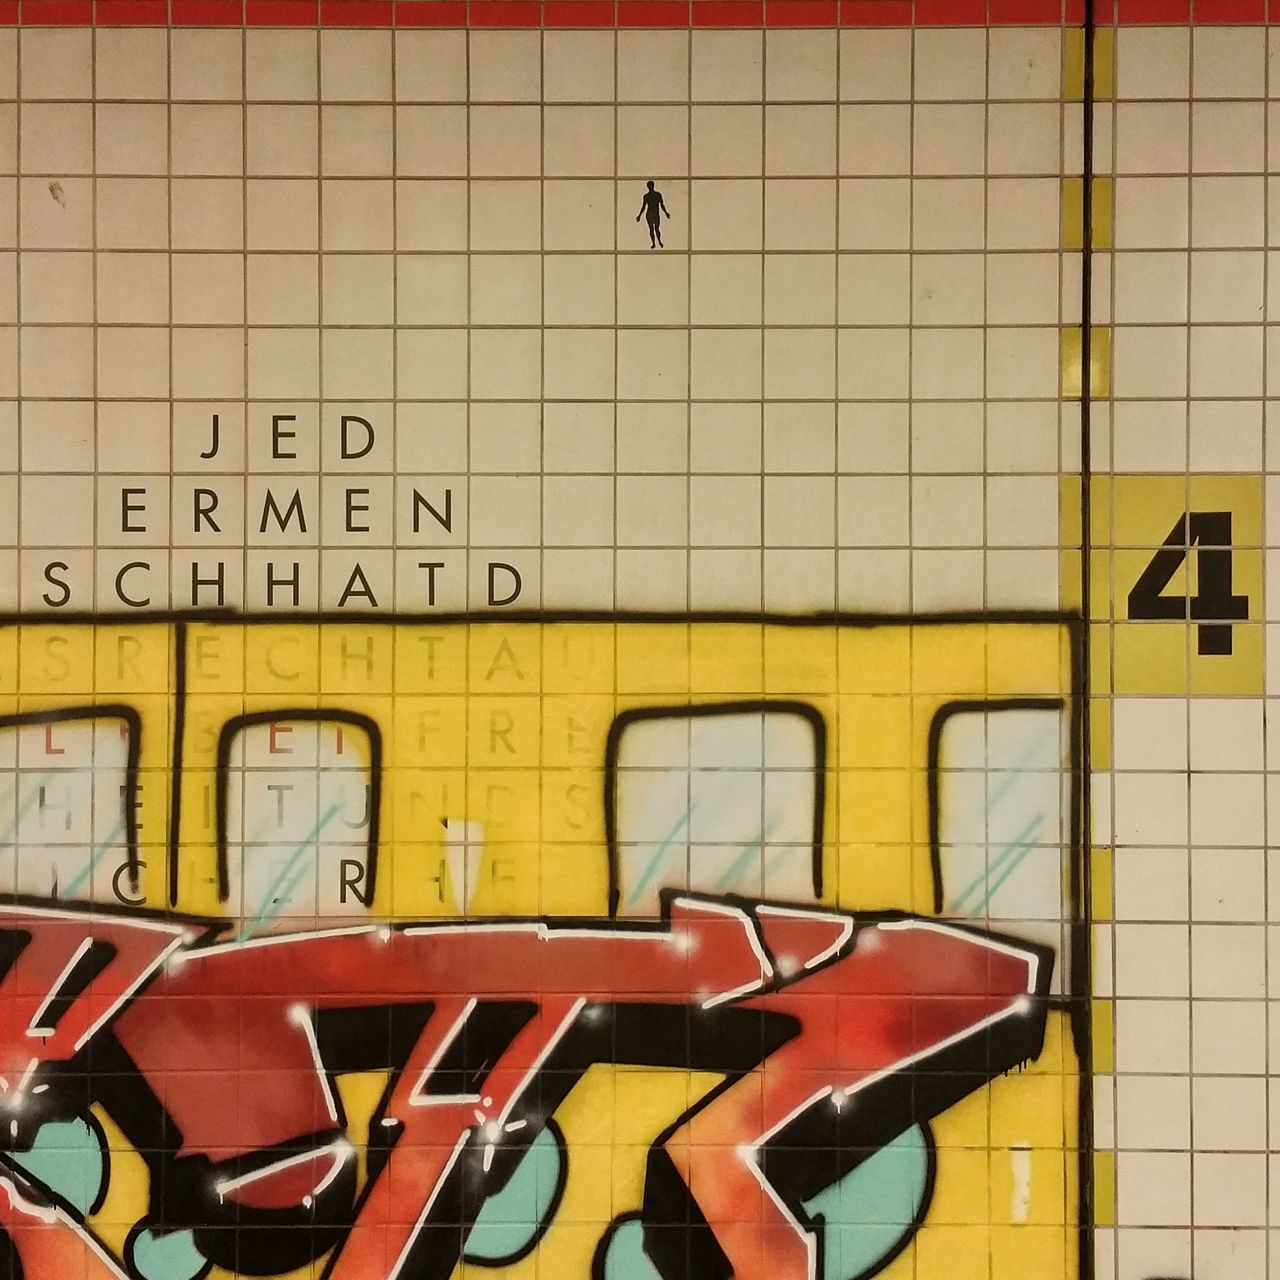 No People Text Transportation Communication Indoors  Hiddengems Urban Scene City Urban Photography City 2.0 - The Future Of The City Berliner Ansichten Public Transportation Railroad Station Platform Urbexexplorer Notesfromtheunderground Streetart/graffiti Yellow Fassadengestaltung Architecture Berlindubistsowunderbar Subway Station Subwayphotography Abstractarchitecture Moabitistbeste Moabit